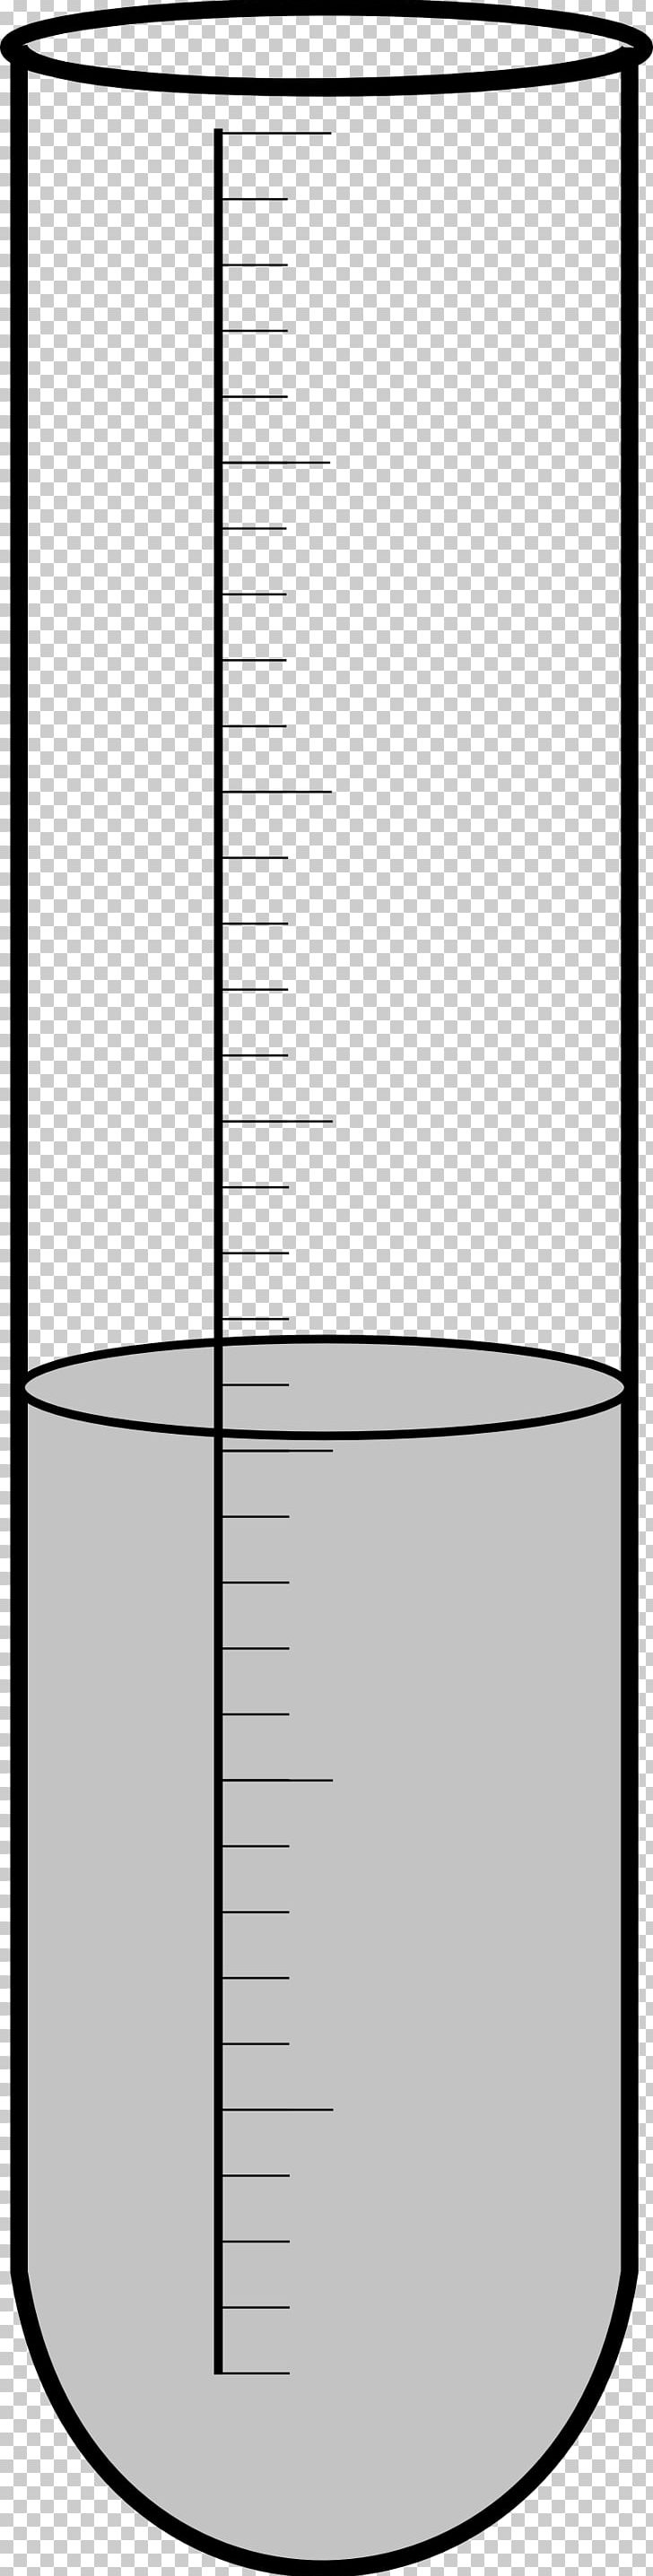 Test Tubes Test Tube Holder Laboratory PNG, Clipart, Angle, Area, Beaker, Black, Black And White Free PNG Download